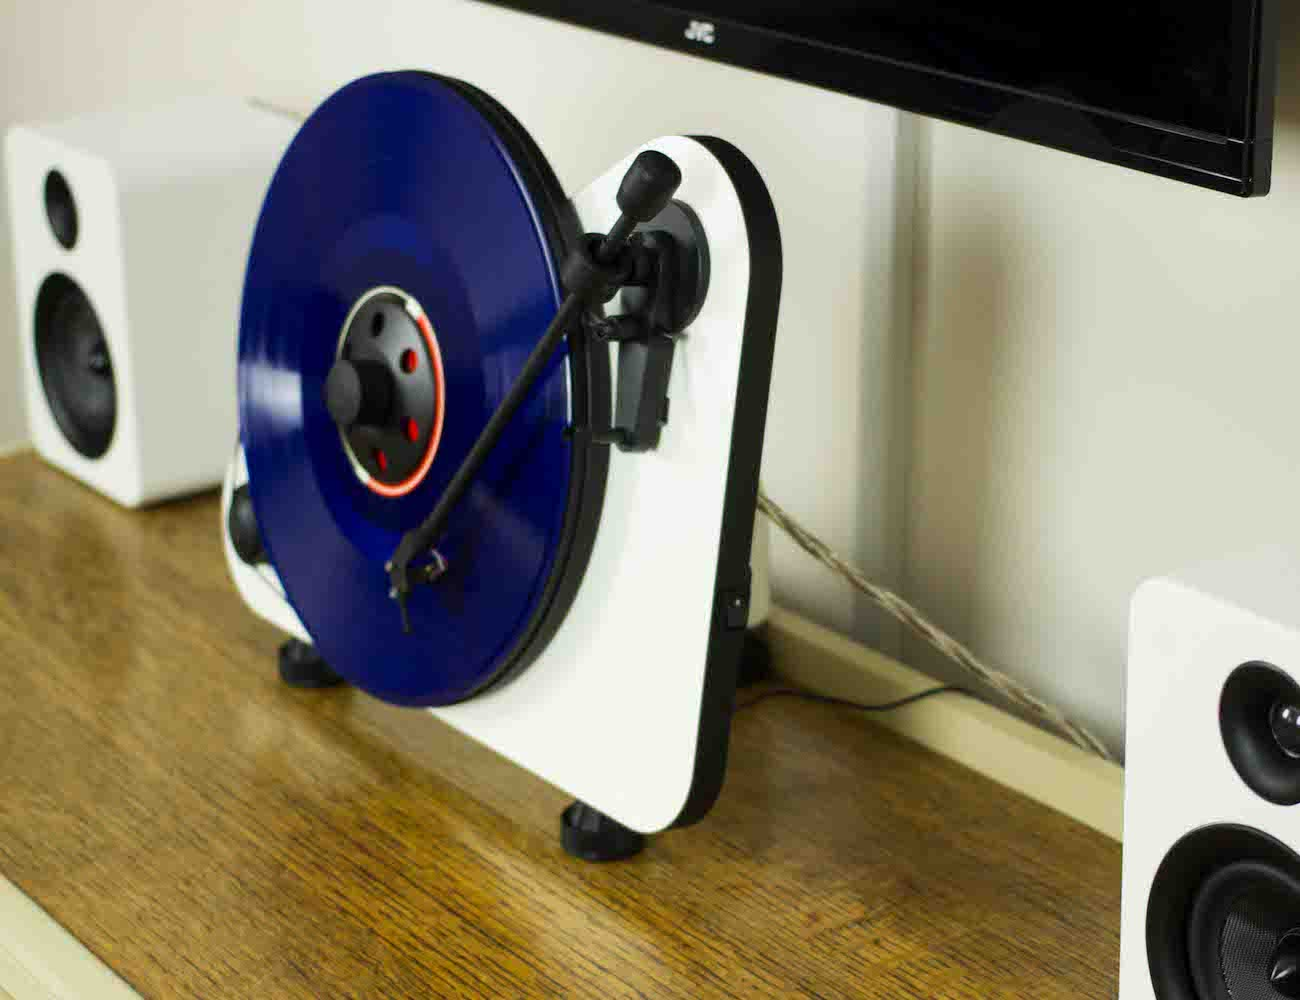 Pro-Ject VT-E Wireless Turntable